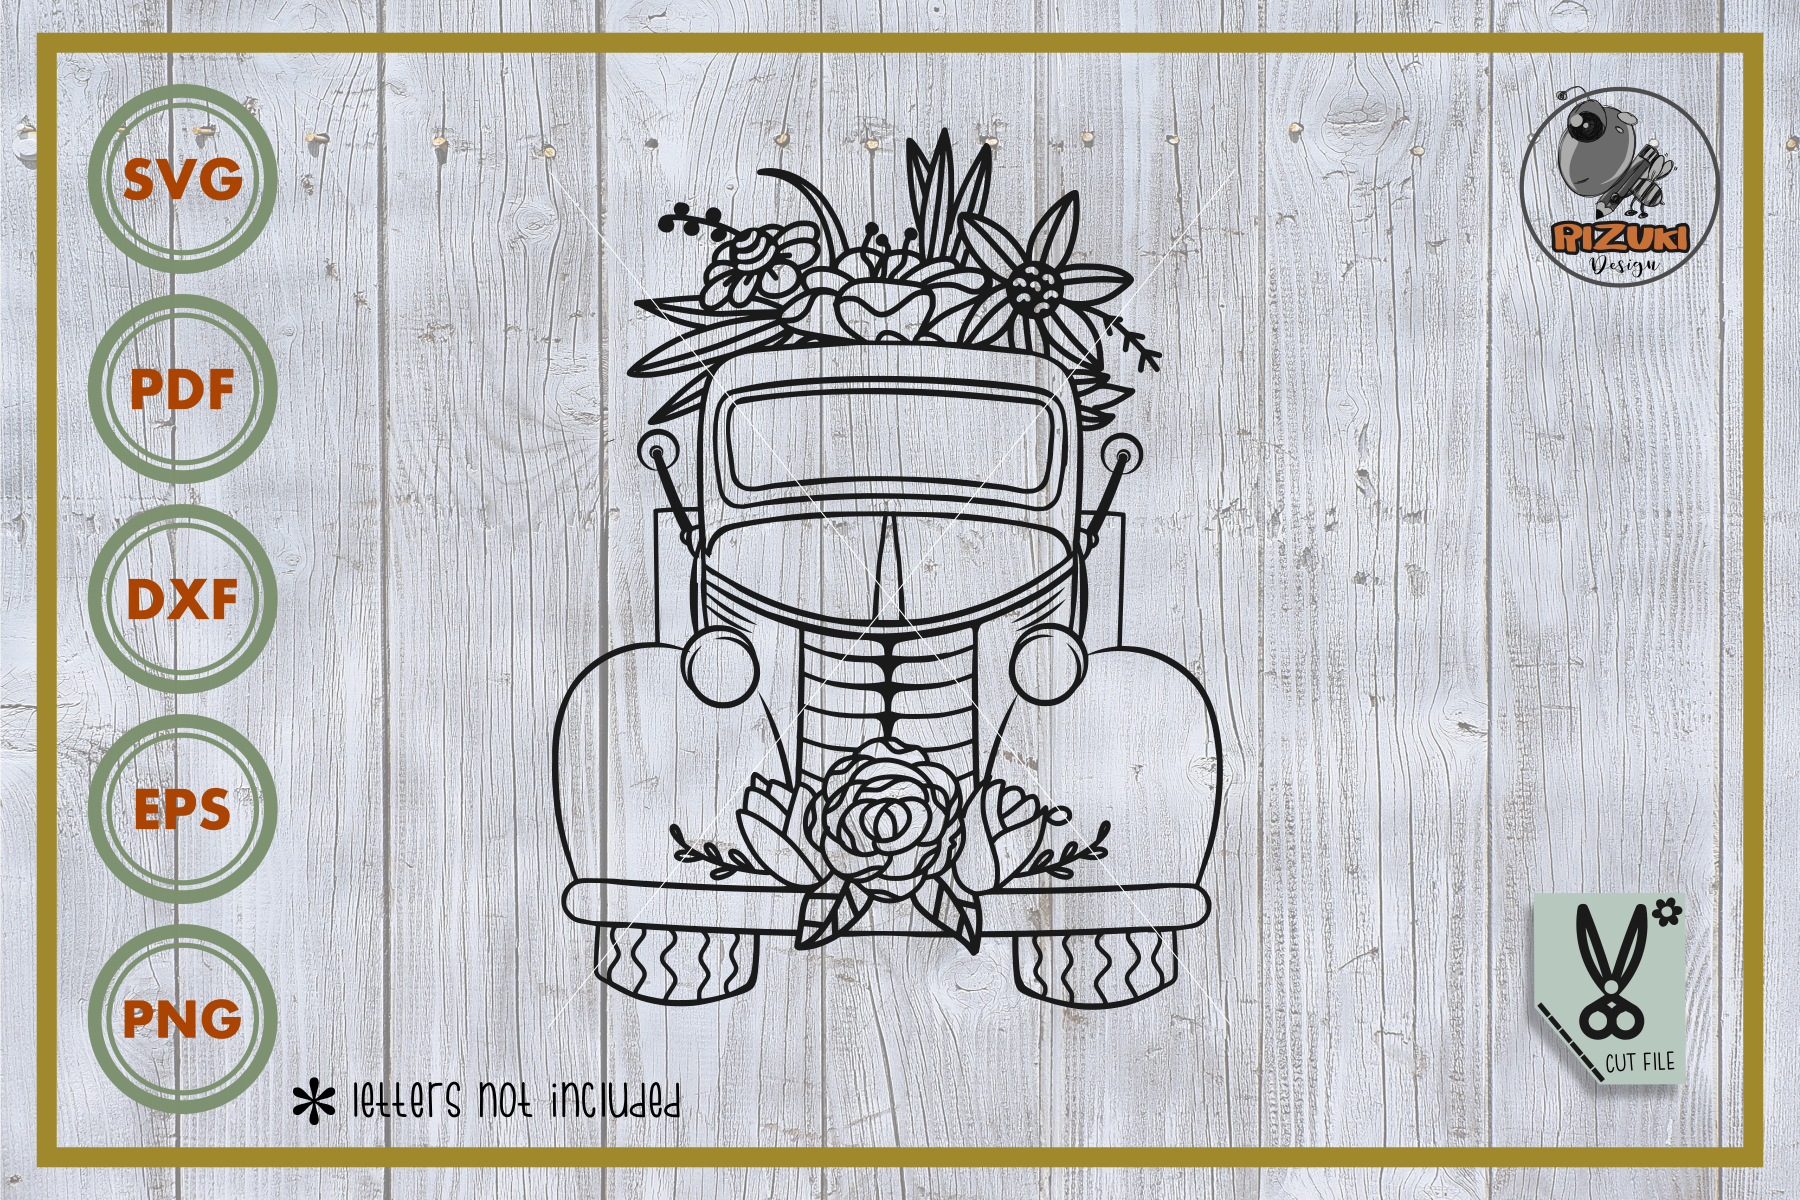 Download Free Truck Truck With Flower Cut File Graphic By Rizuki Store for Cricut Explore, Silhouette and other cutting machines.